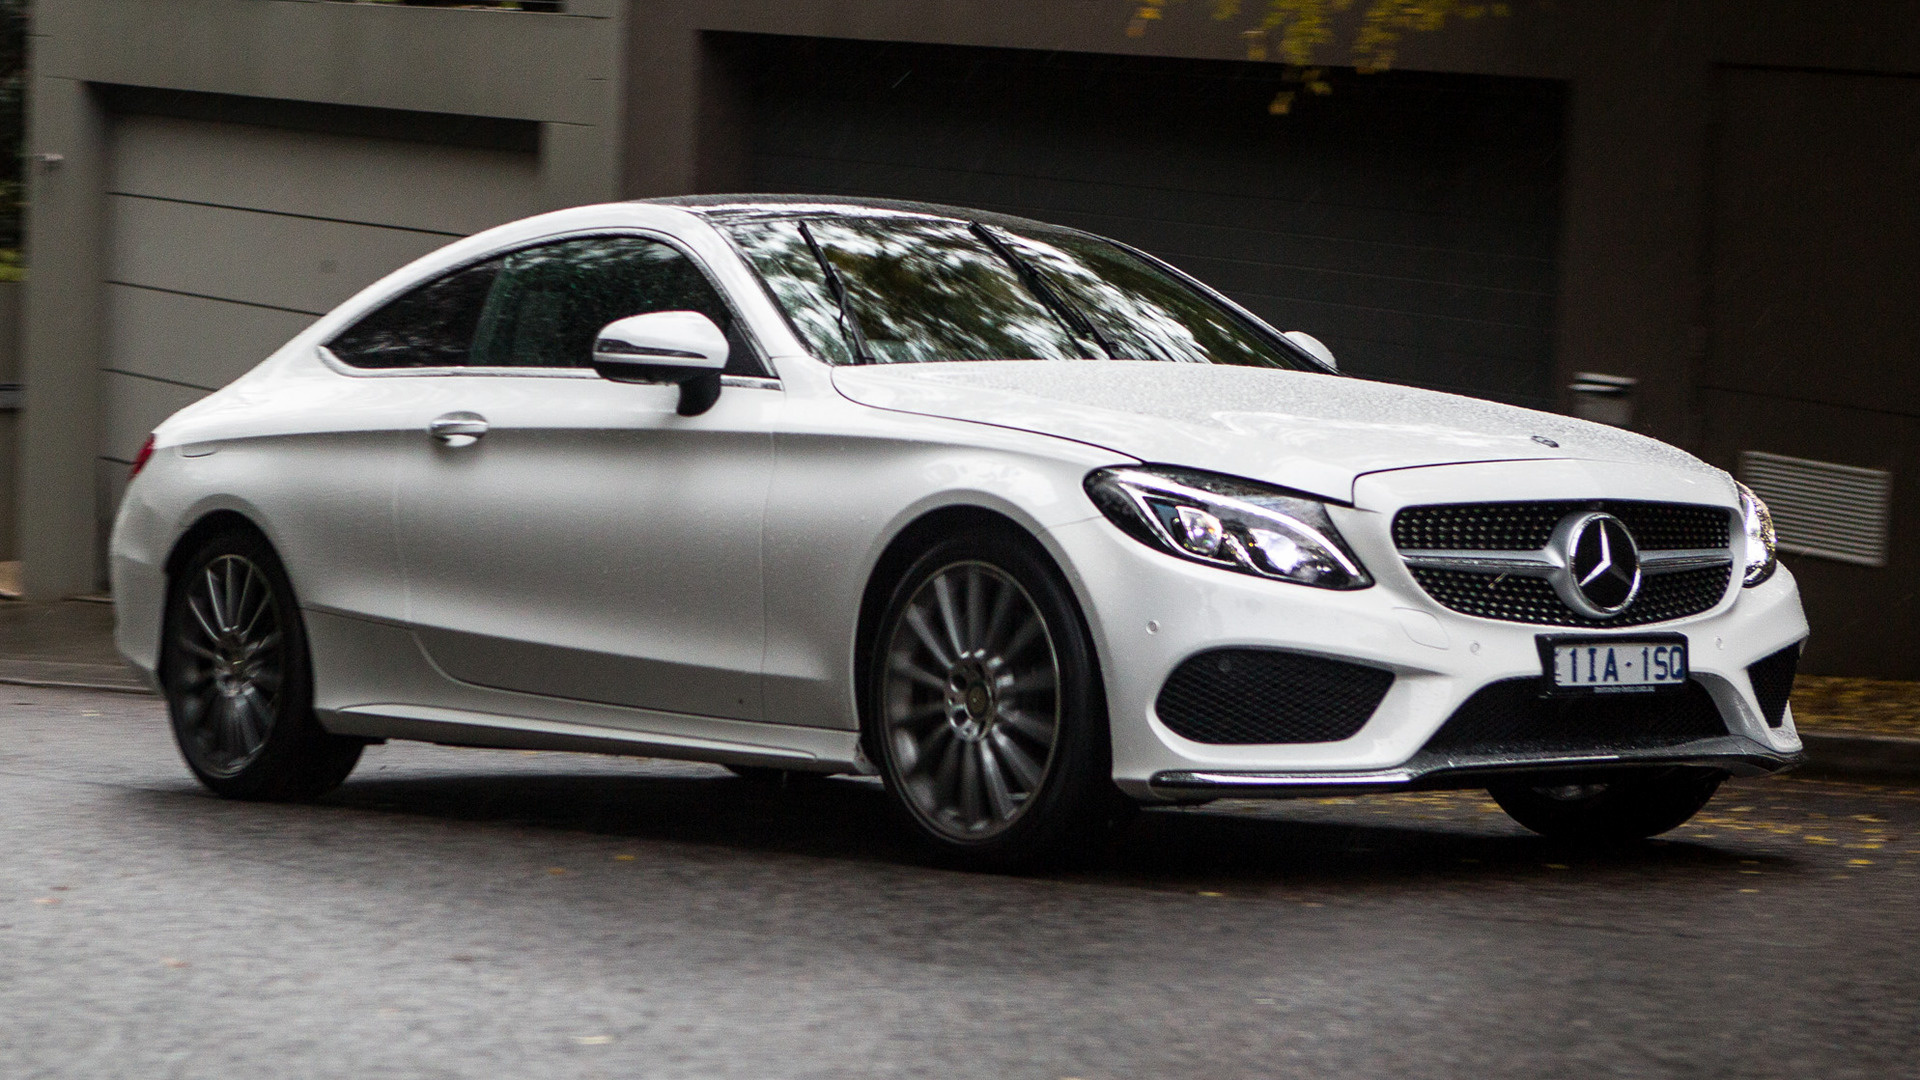 Mercedes benz c class coupe amg line 2016 au wallpapers and hd images car pixel - Mercedes benz c class coupe amg ...